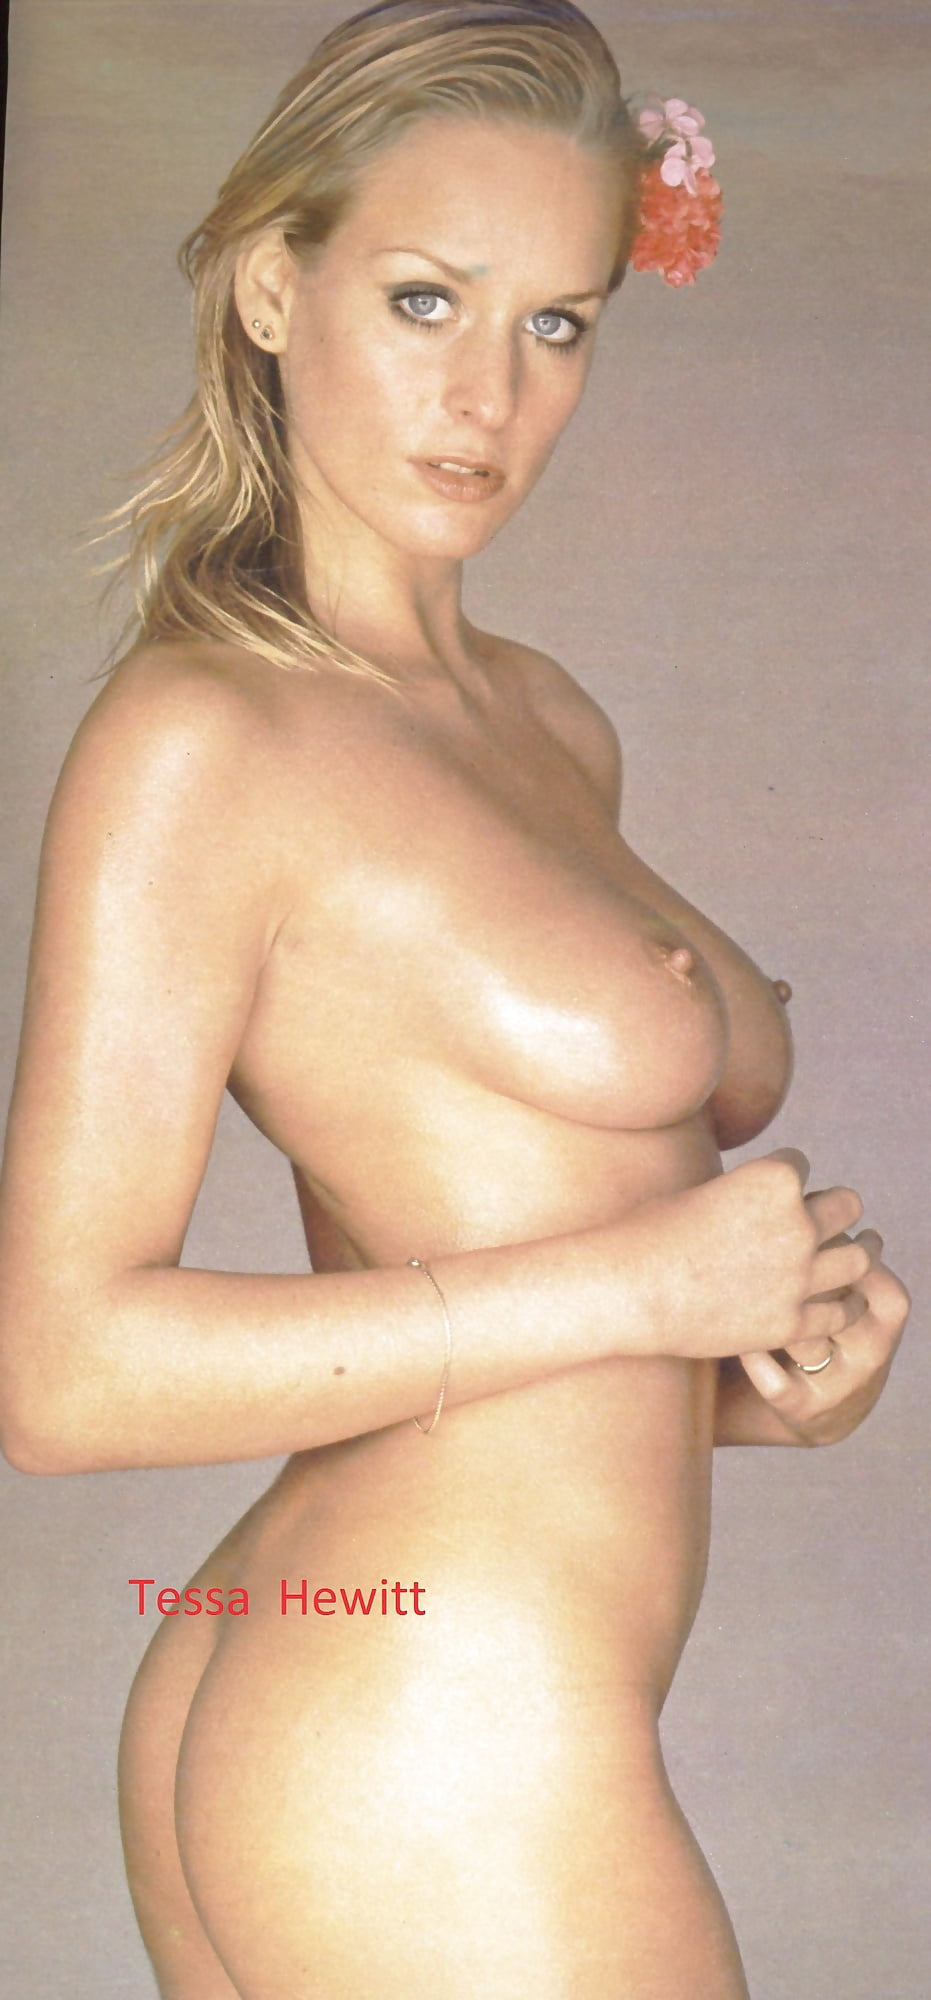 Sun page 3 girl of the year-8882